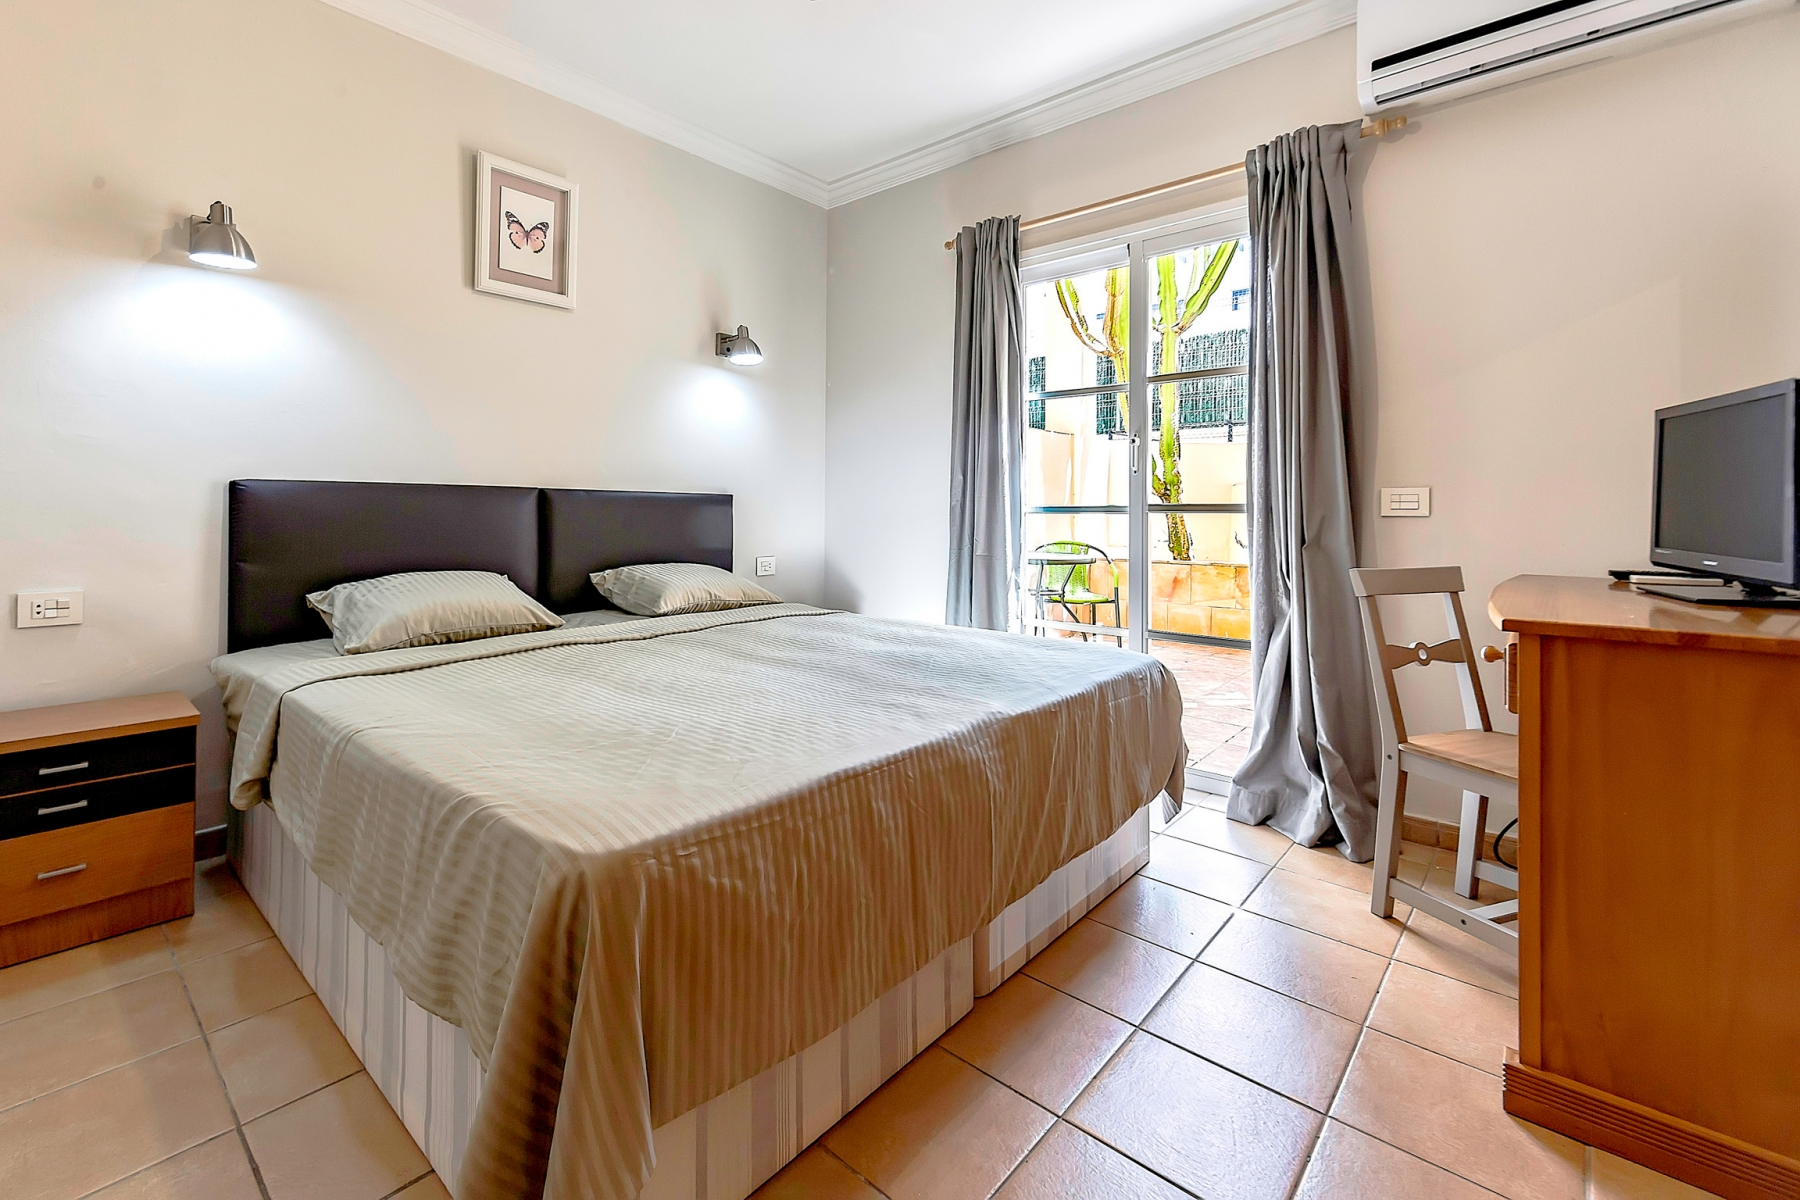 Properties for Sale in Tenerife, Canary Islands, Spain | SylkWayStar Real Estate. 1 bedroom apartment Yucca Park. Image-22573